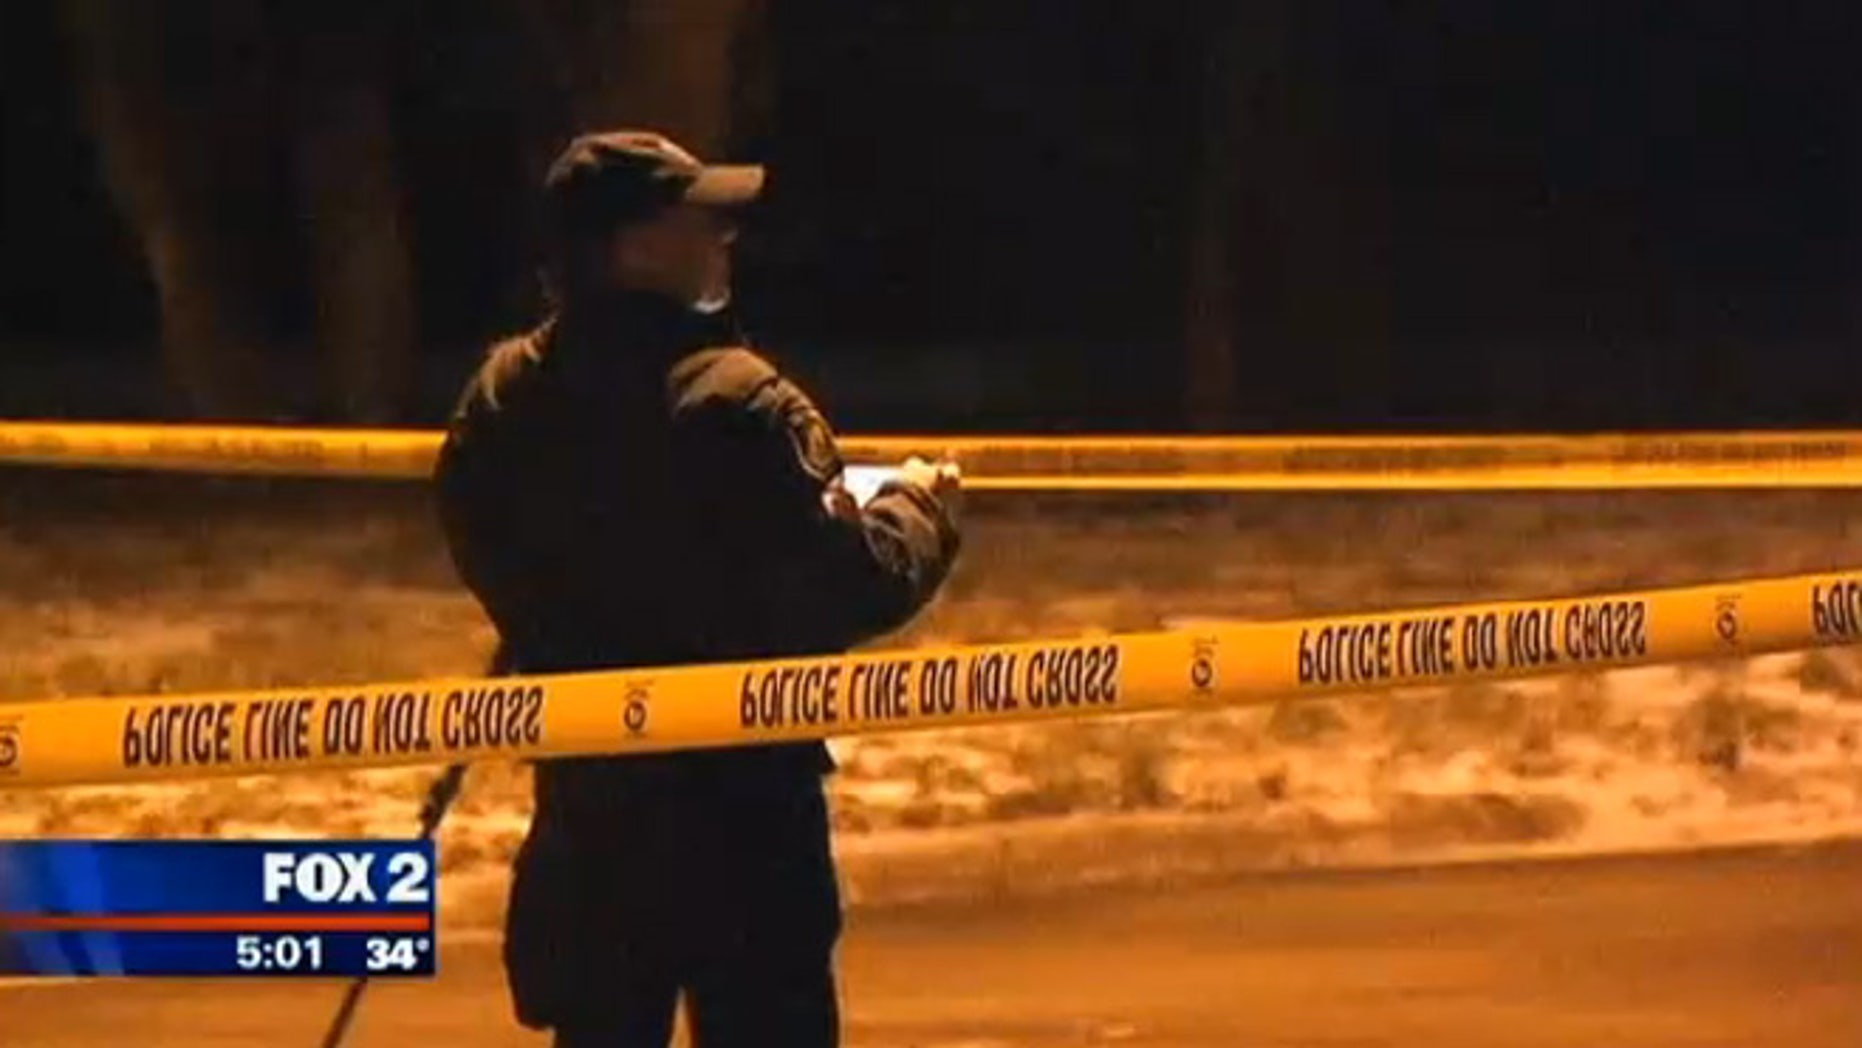 Police investigate the scene in Dearborn Heights, Mich., where a woman's body was found badly beaten and dumped along a road in suburban Detroit.